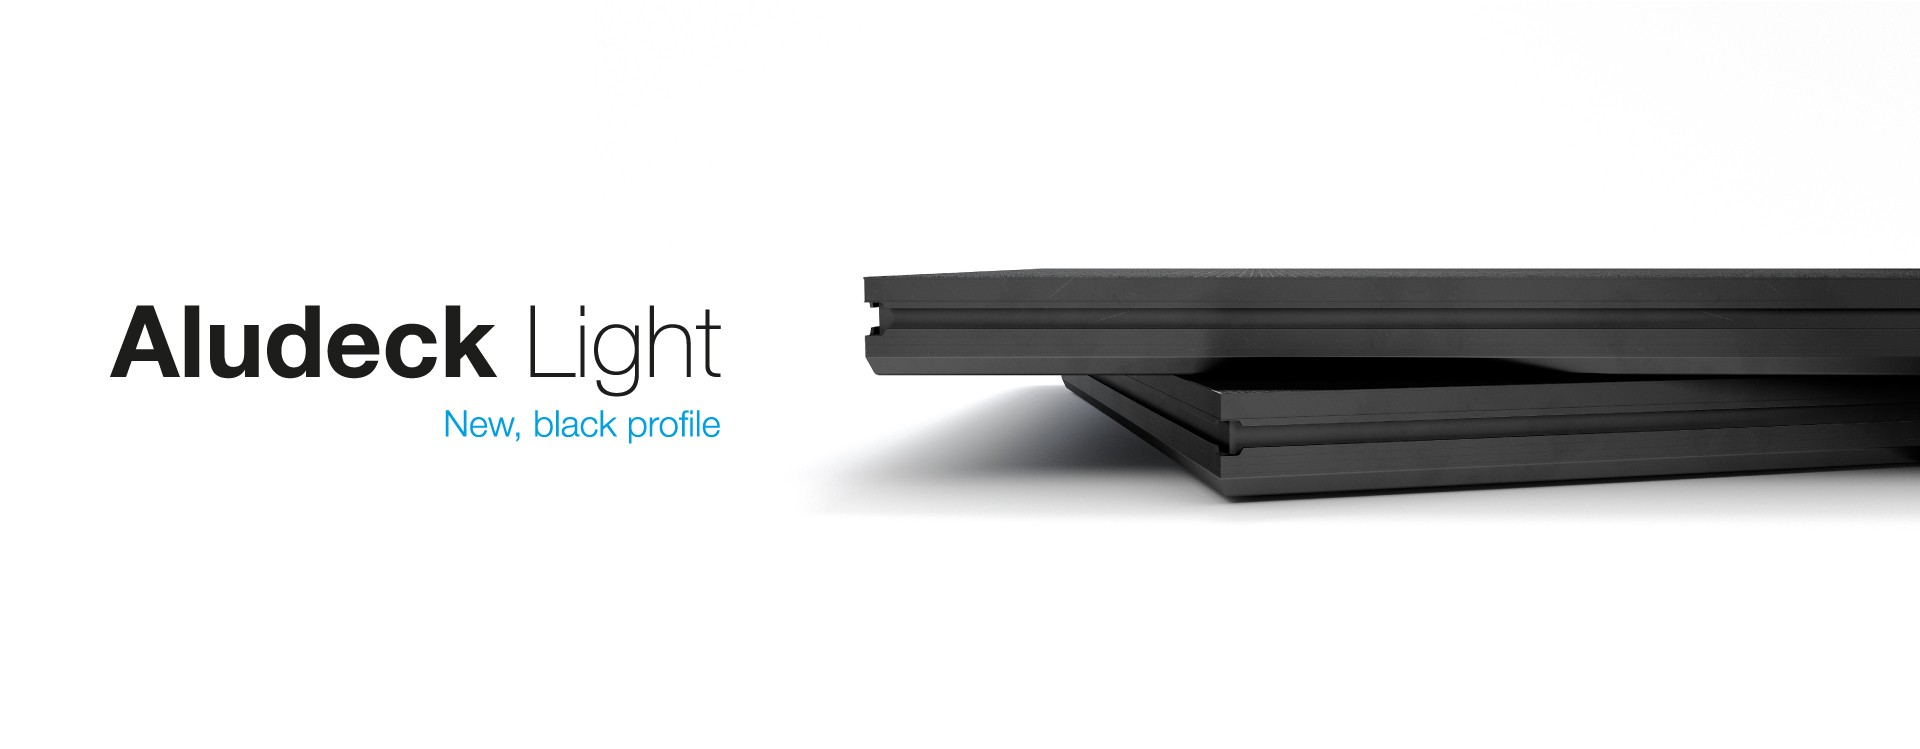 Aludeck Light - black profile